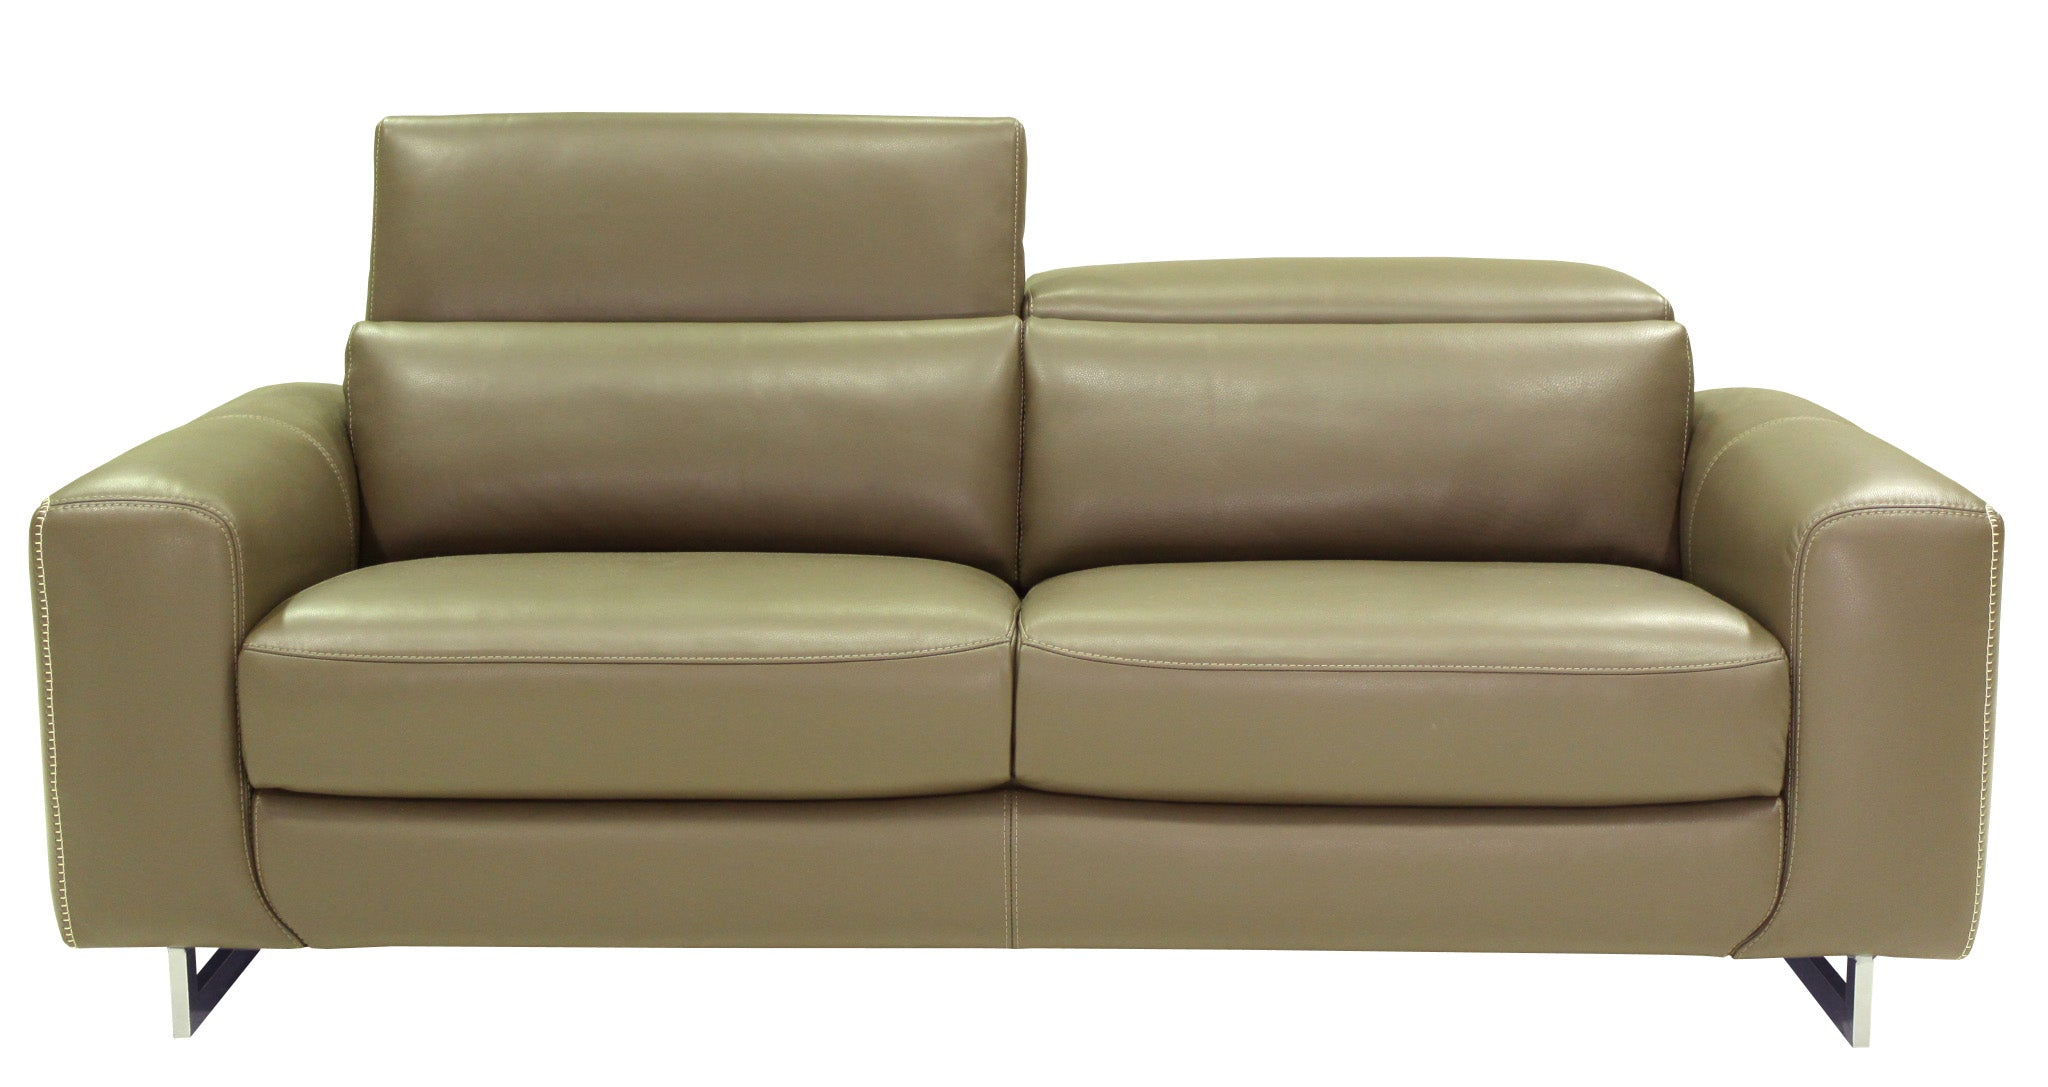 Impressing Sofa Köln Photo Of Muse A6168 With Power Recliners